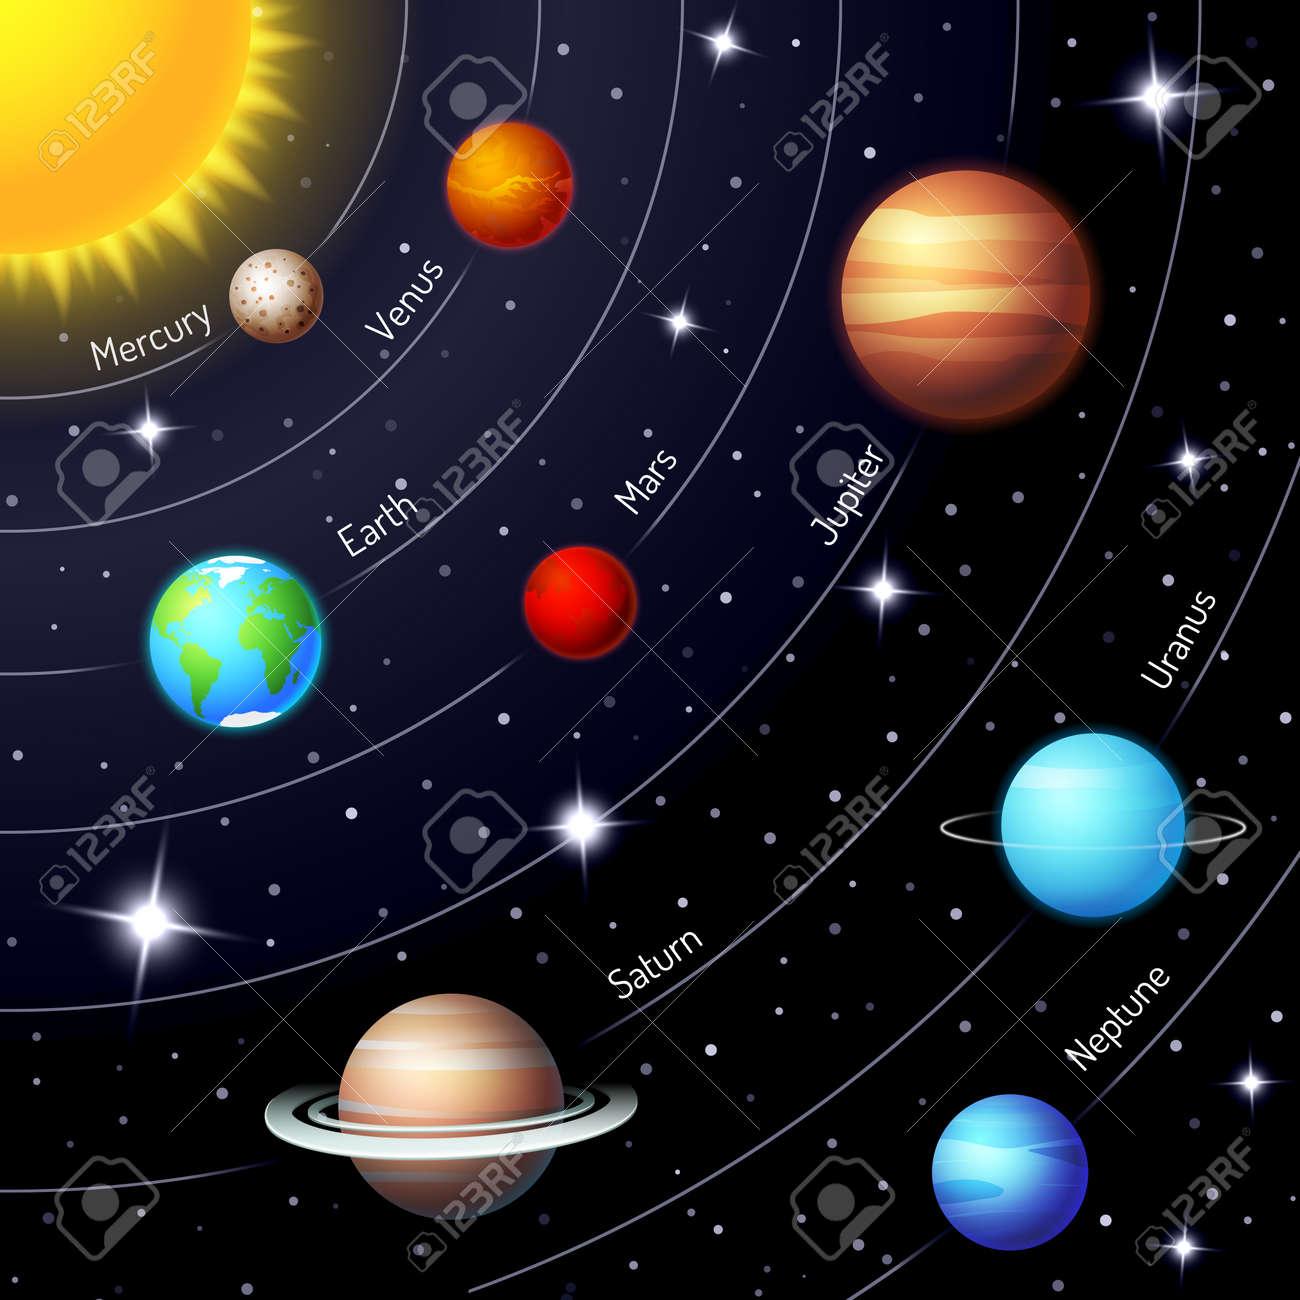 Colorful vector solar system showing the positions and orbits of the Sun Earth Mars Mercury Jupiter Saturn Uranus Neptune in a twinkling night sky with stars - 166768940